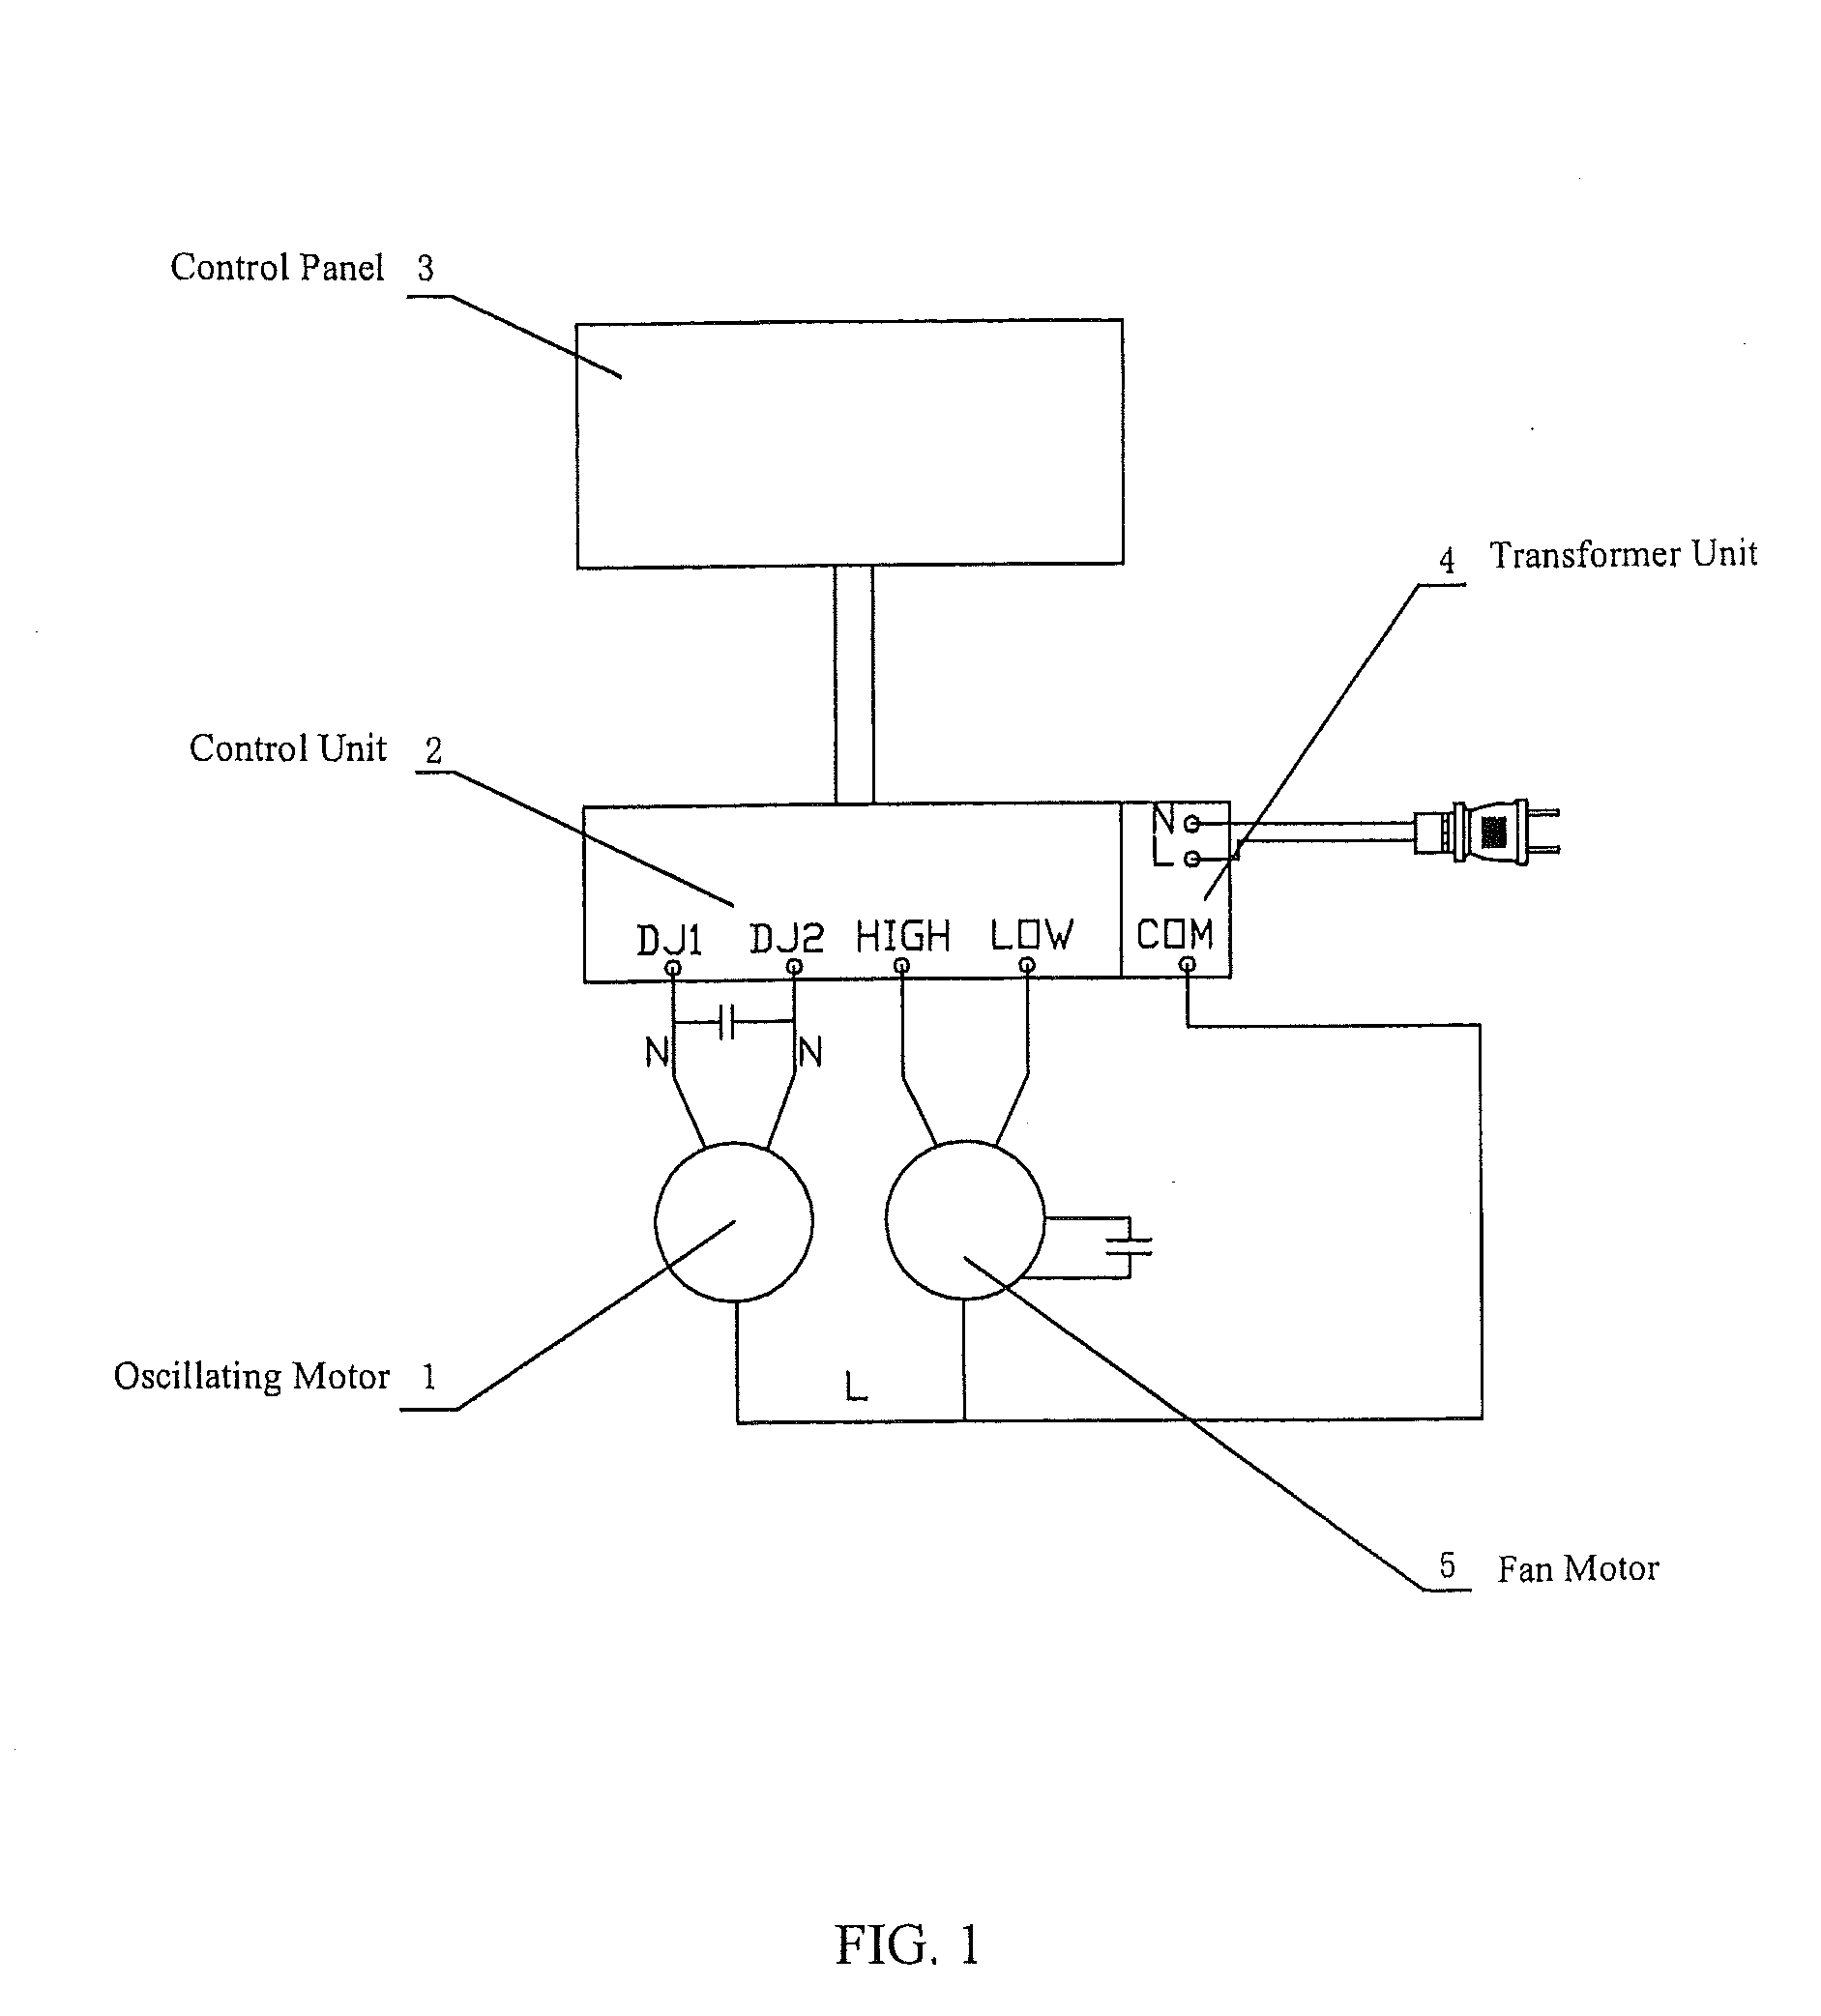 US20110070084A1-20110324-D00001  Sd Fan Switch Wiring Diagram on fan parts diagram, fan receiver diagram, fan switch assembly, fan motor diagram, fan capacitor diagram, fan switch timer, ceiling fan schematic diagram, fan direction diagram, fan switch cover, fan switch radiator, westinghouse fan switch 77286 diagram, 3 speed fan switch diagram, 74ls08 pin diagram, 2 pole switch diagram, fan switch lights, fan pull, fan switch capacitor, fan switch relay, fan switch wire, fan switch circuit,